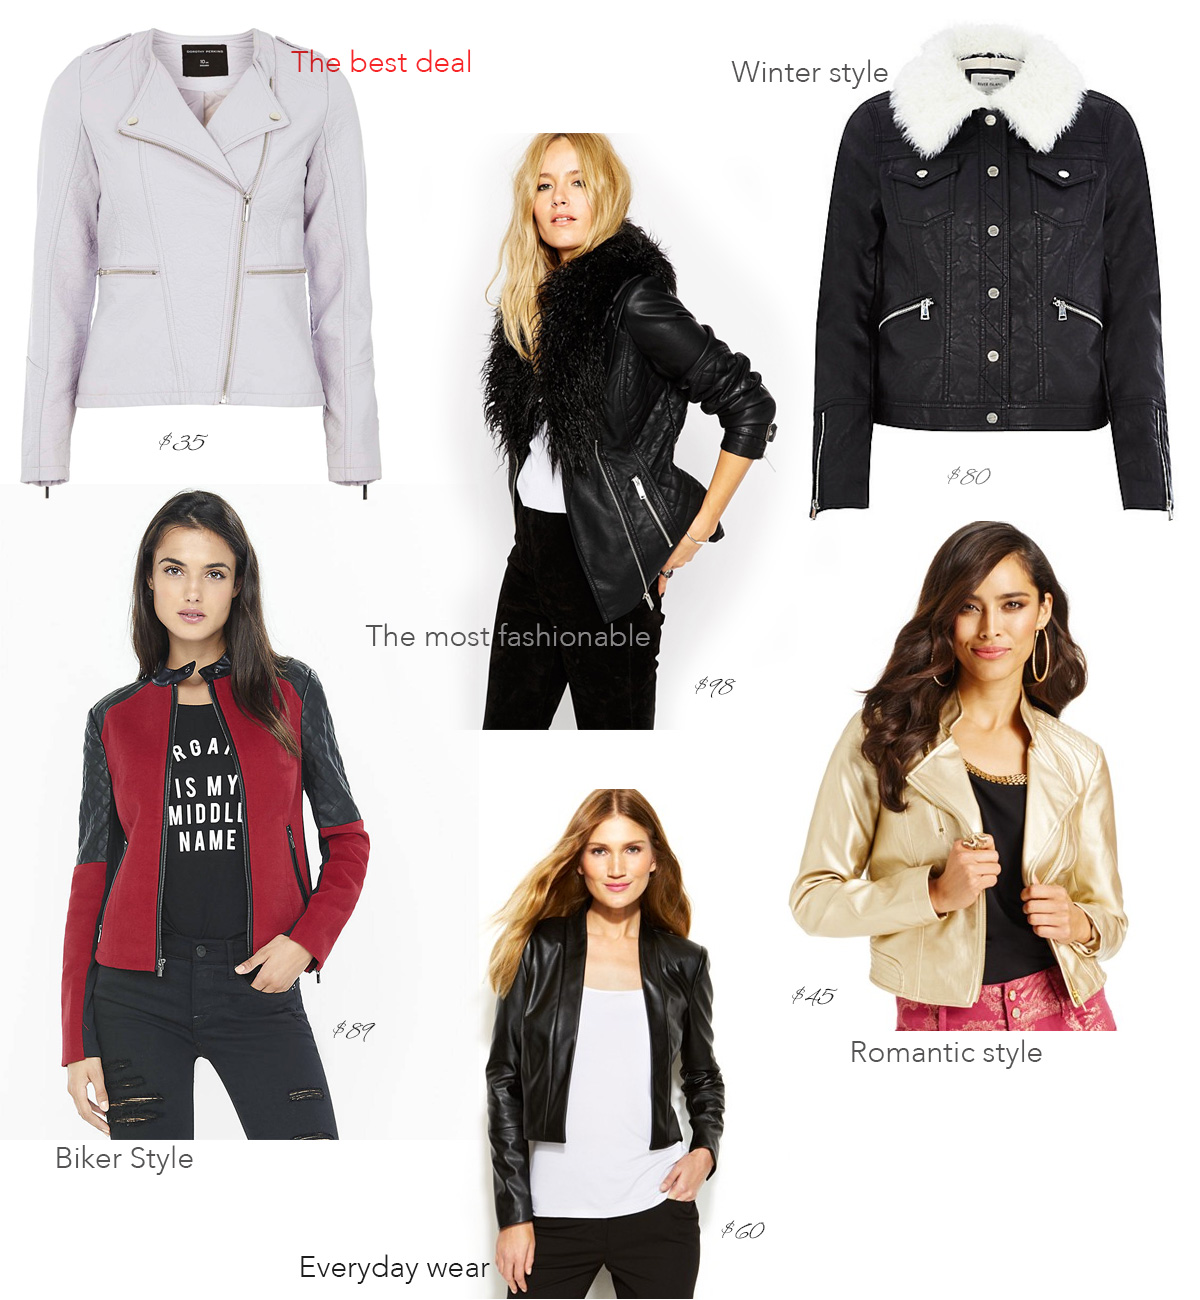 Leather jacket under 100 - Black Friday Deals The Faux Leather Jackets Under 100